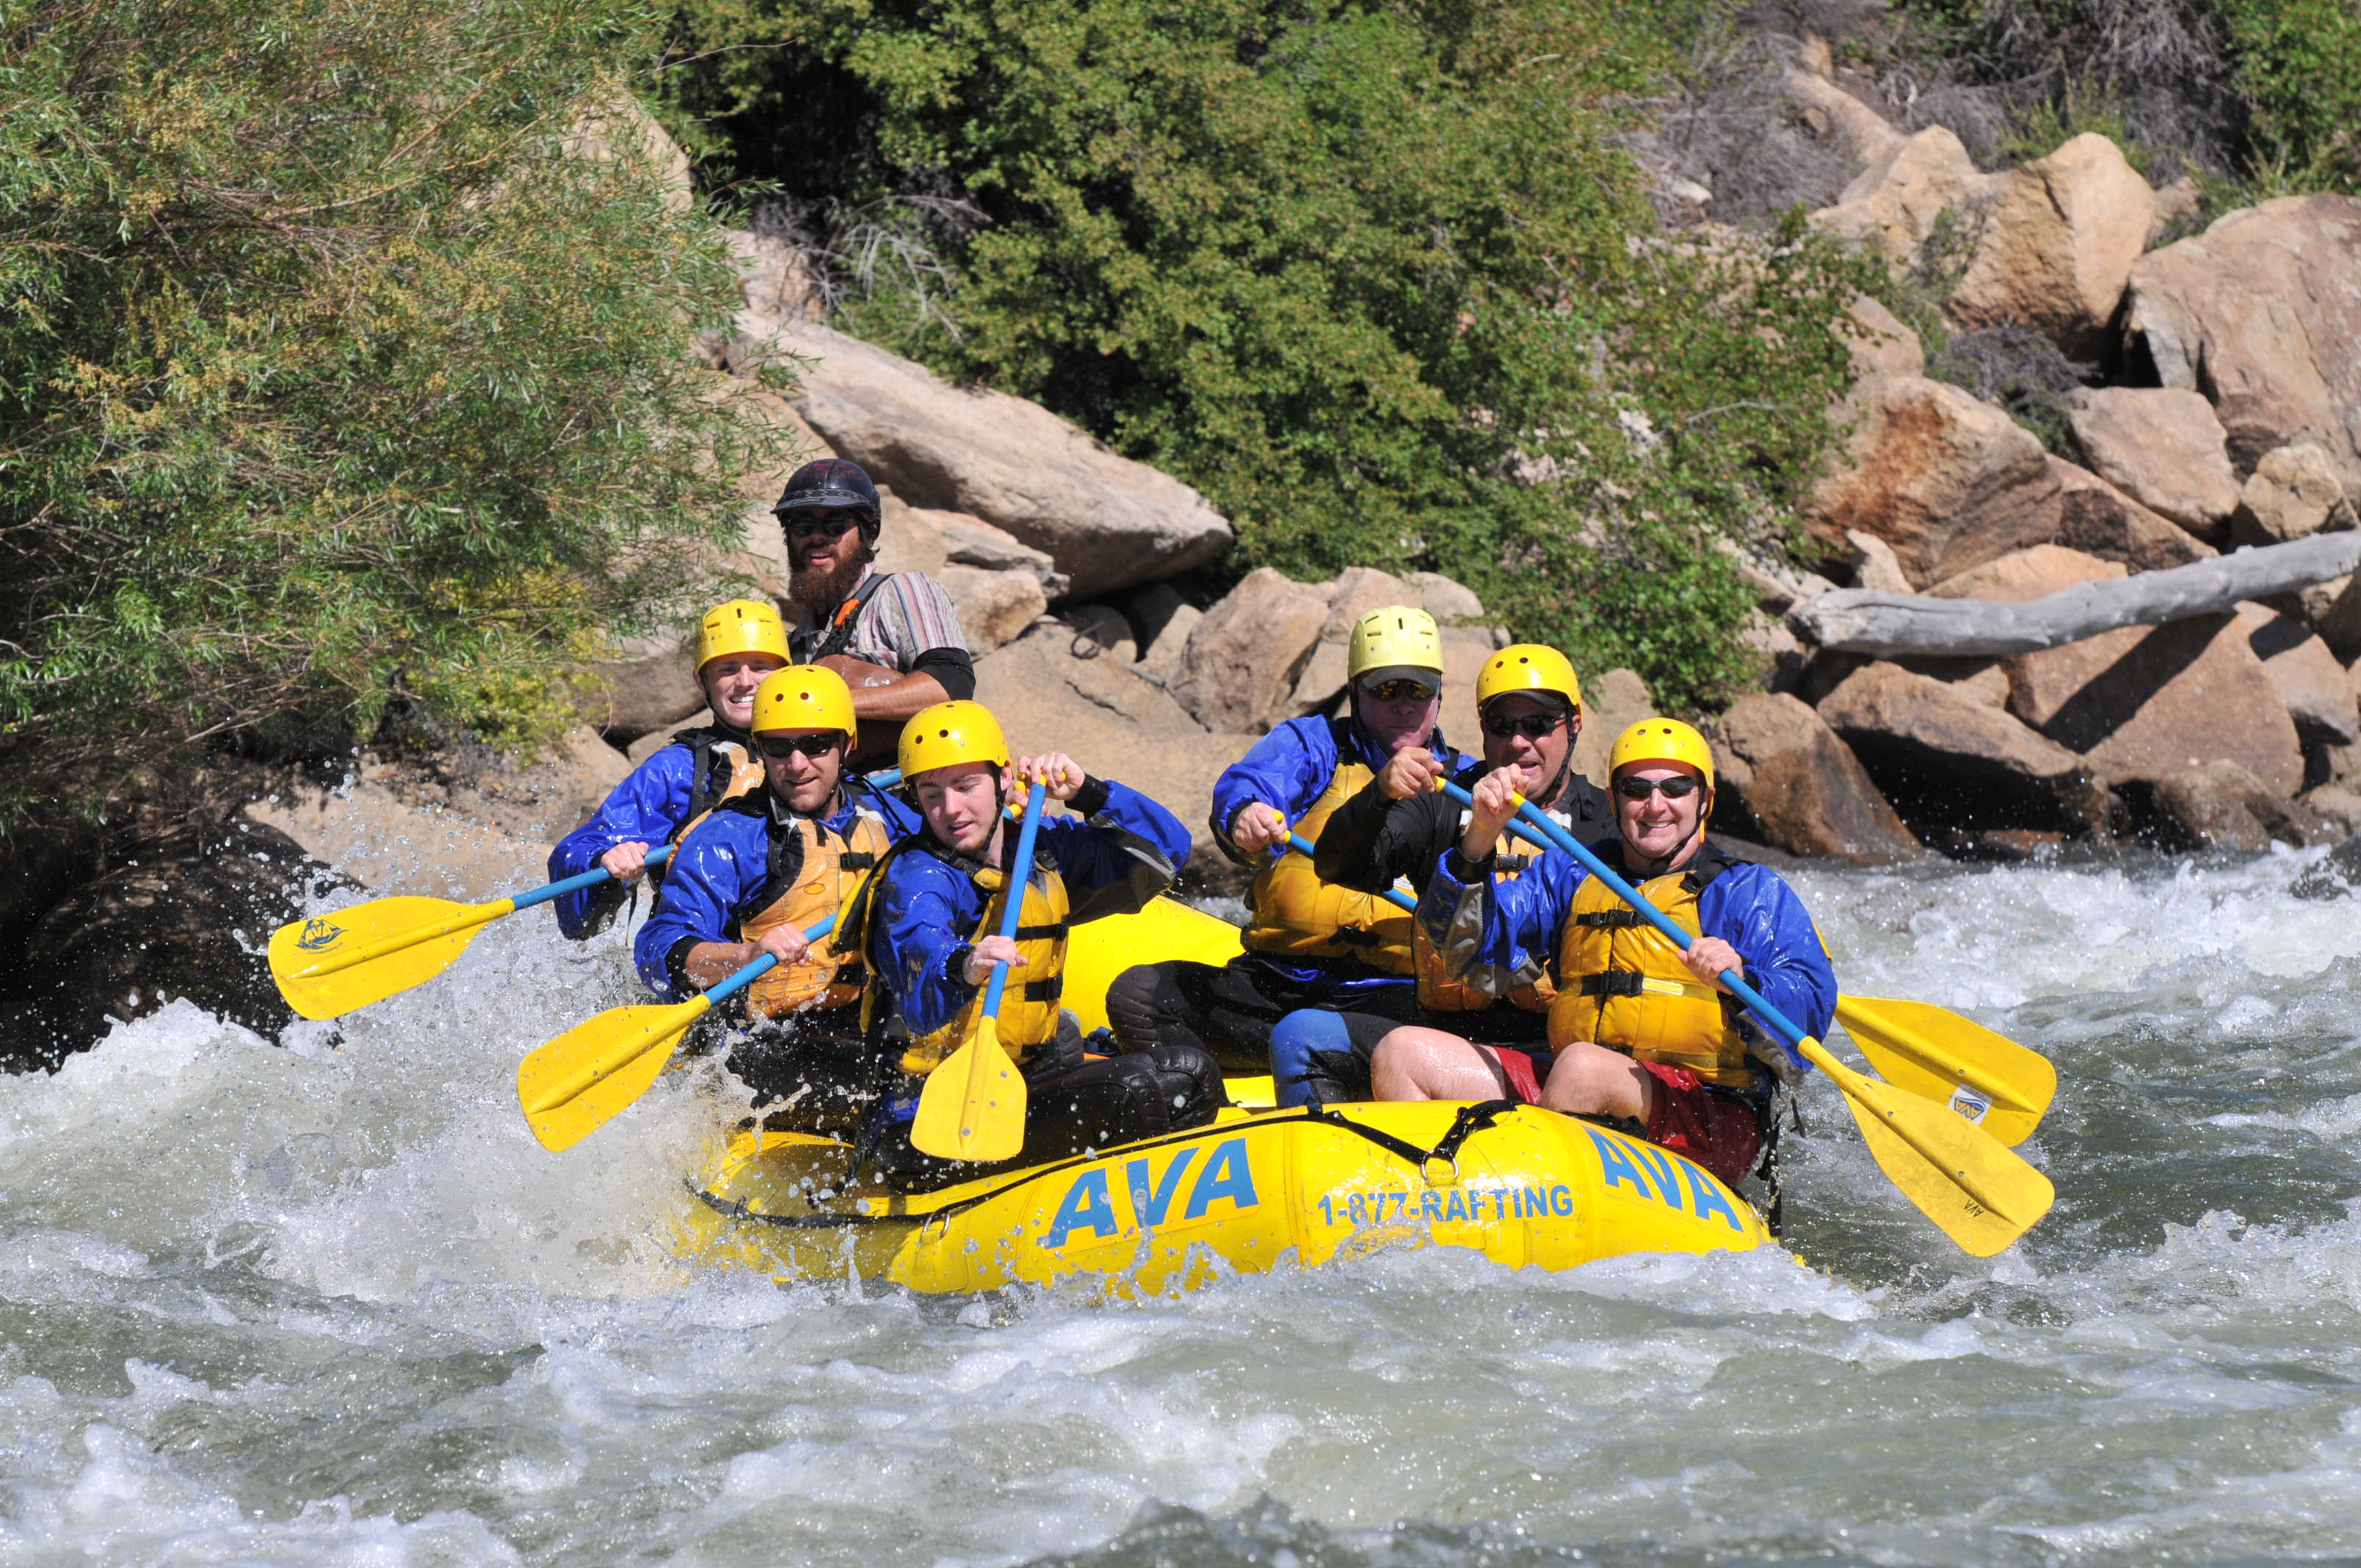 Colorado Whitewater Rafting - Best Time To Go | Breckenridge Whitewater